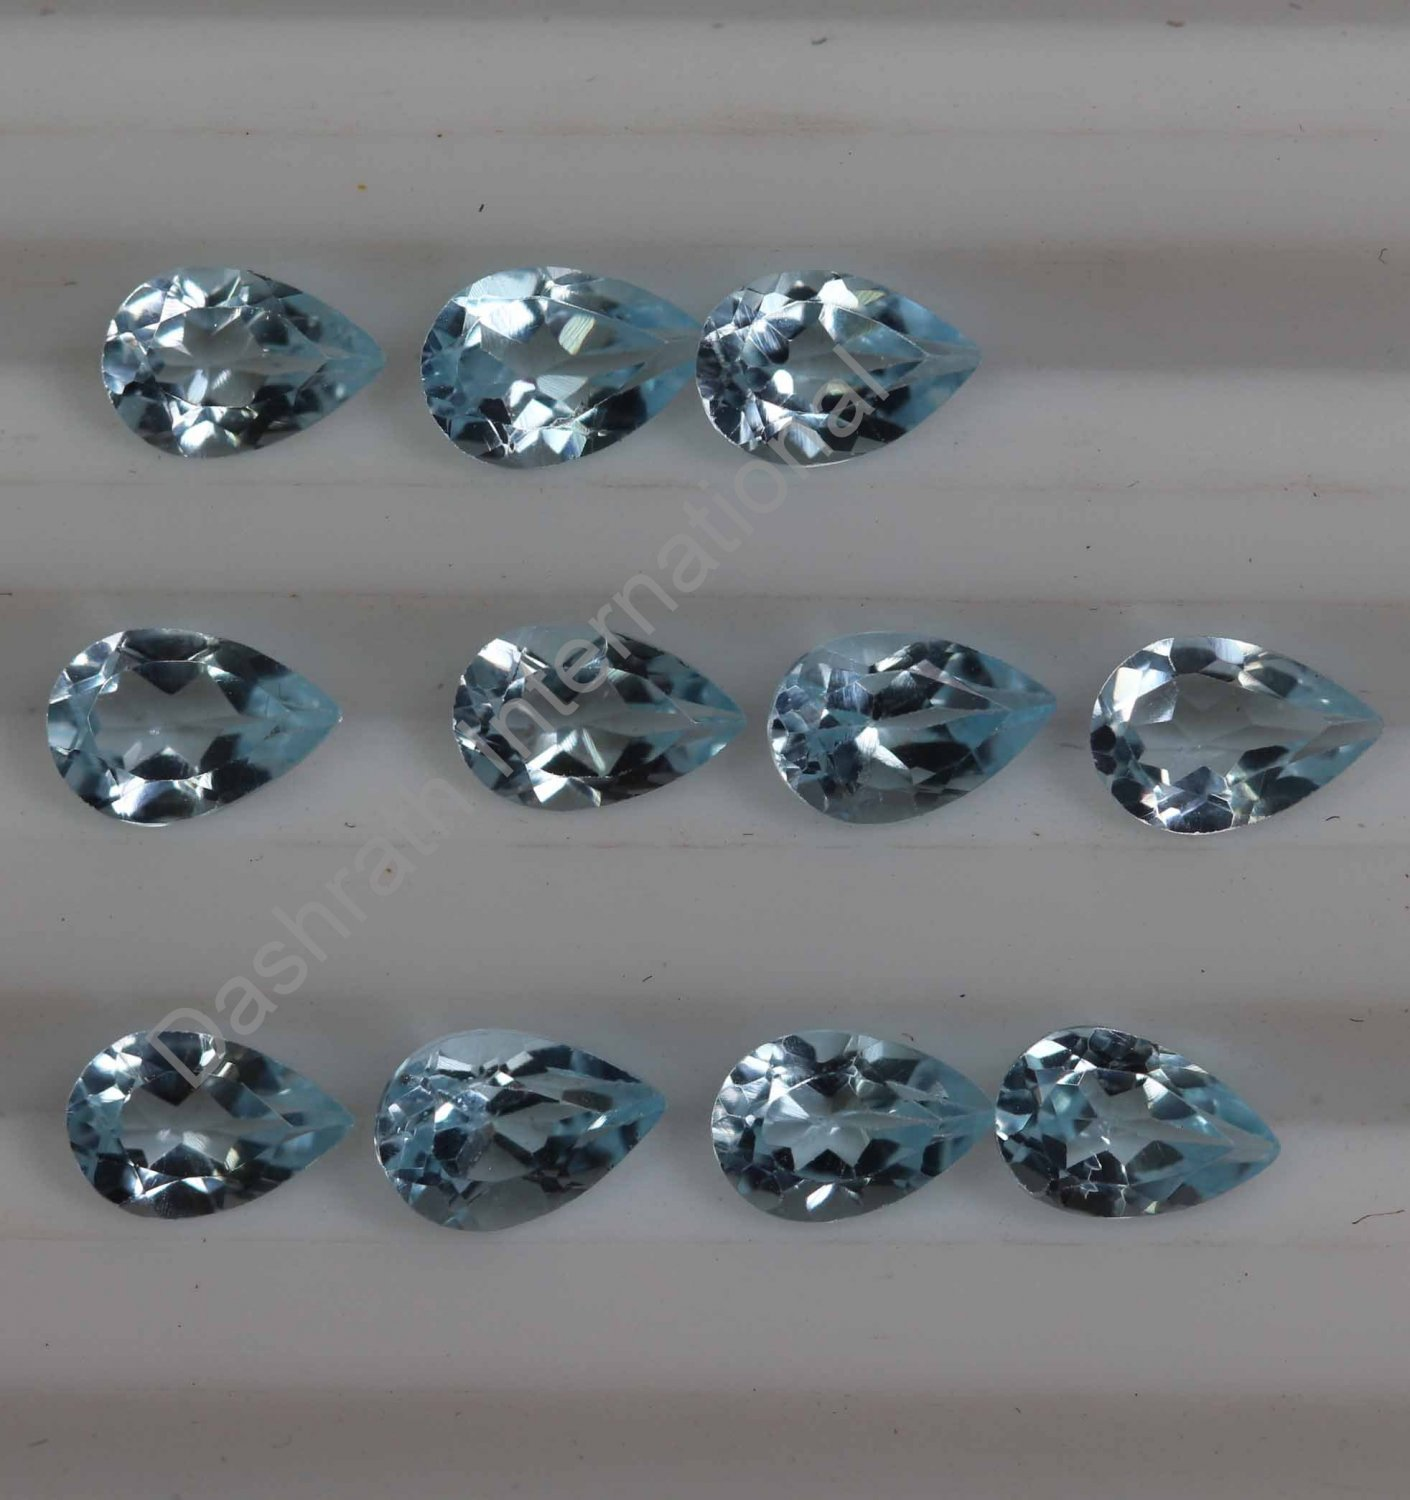 4x6mm Natural Sky Blue Topaz Faceted Cut Pear 100 Pieces Lot  Top Quality Loose Gemstone